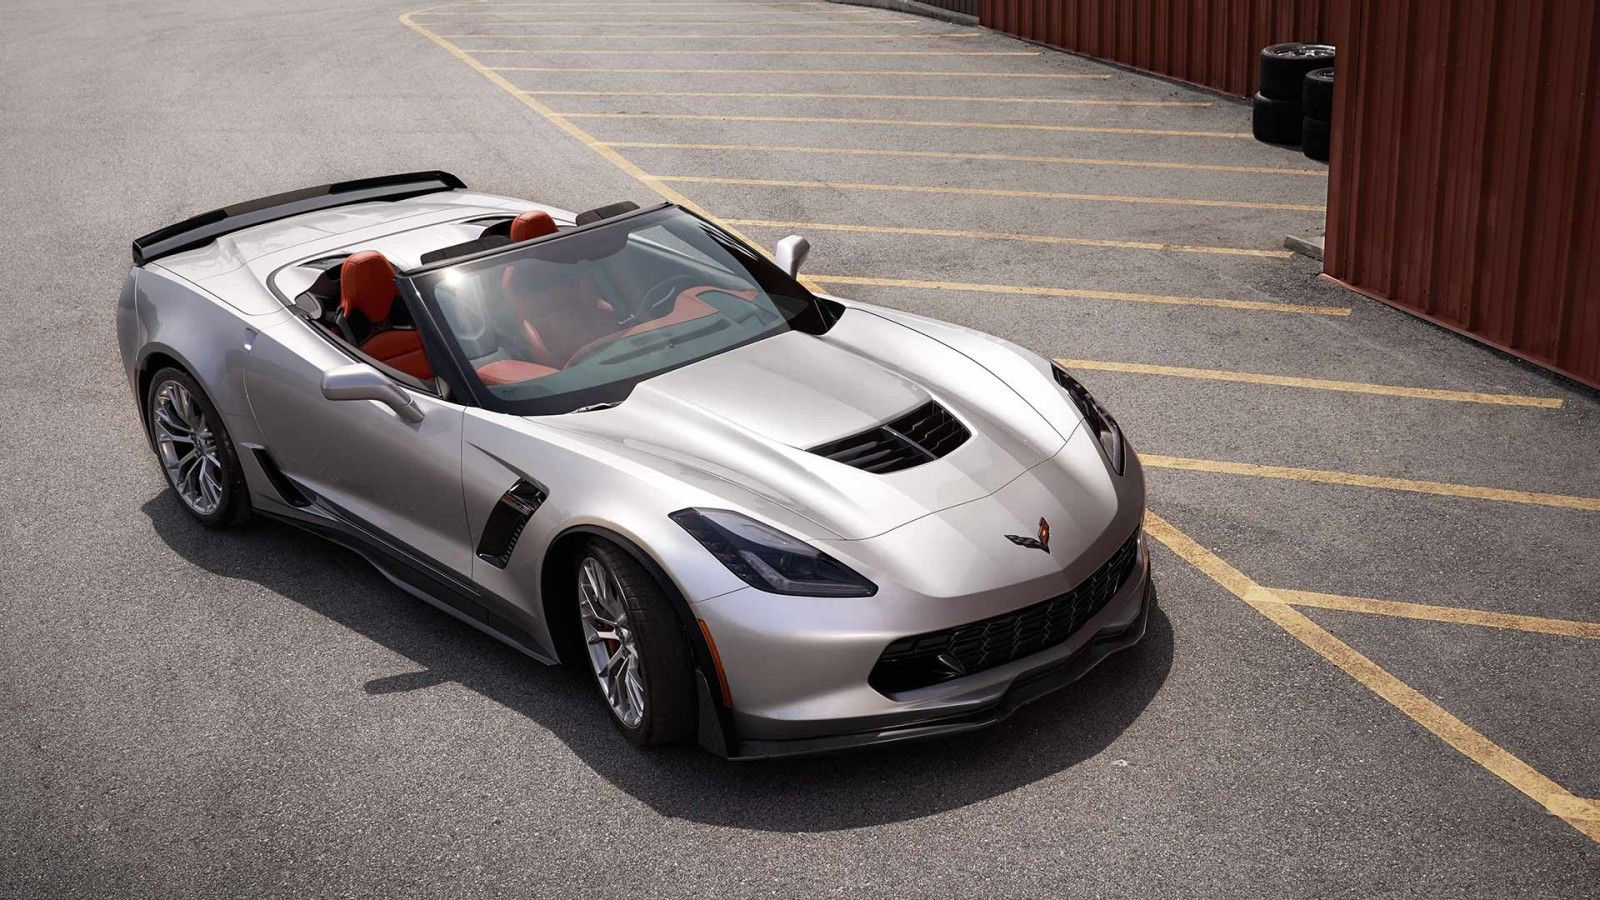 Take A Look At The Stylish Exteriors Of New Chevrolet 2016 Corvette Supercar And View Photos Here